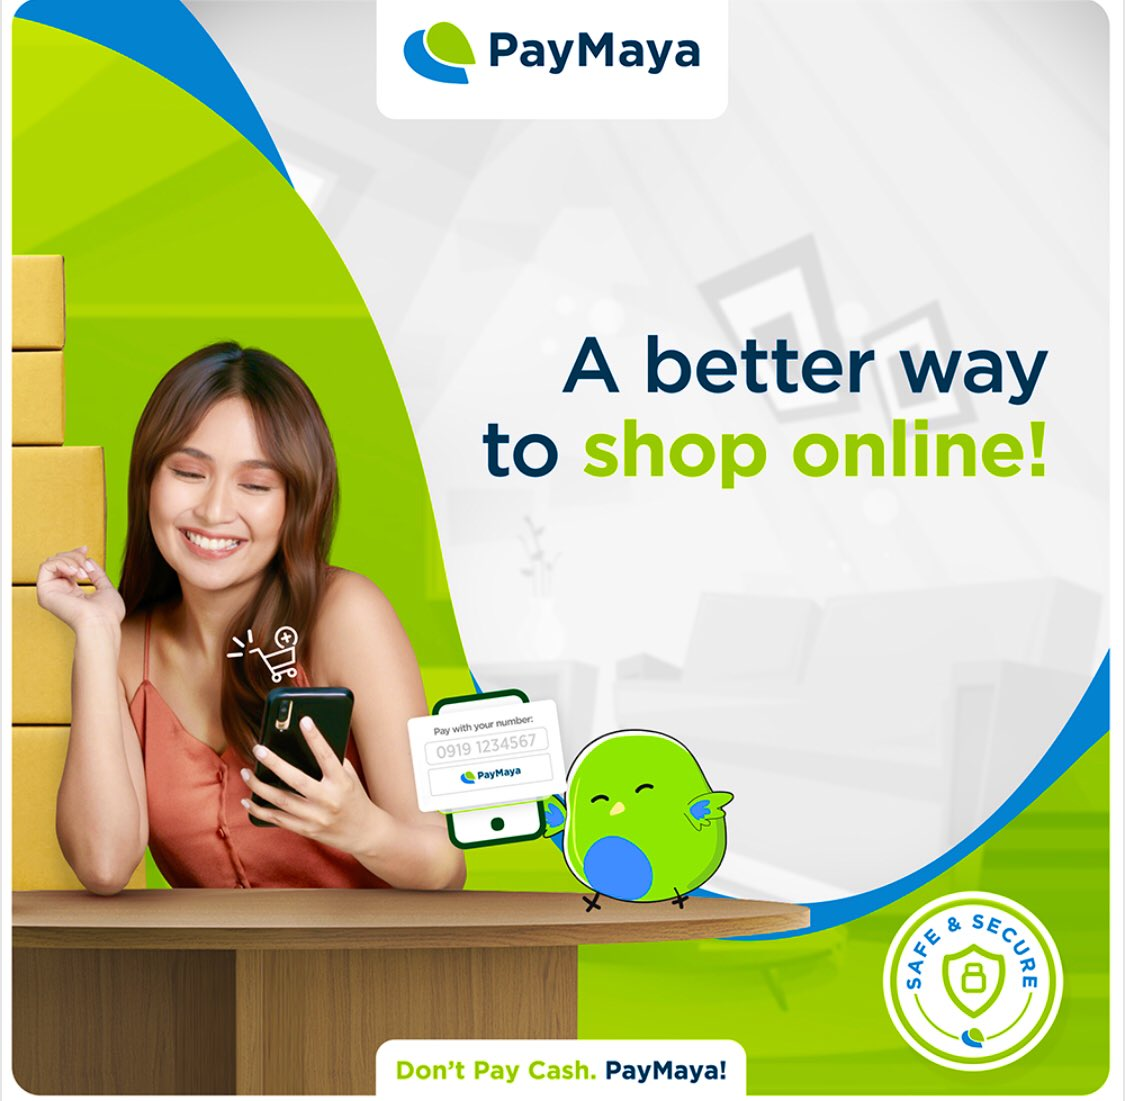 """""""It's better to #PayWithYourNumber for the essential things you need this holiday  conveniently with PayMaya!"""" 💚💚💚 ©️🔗   @bernardokath @imdanielpadilla  #PayMayaKathNiel"""